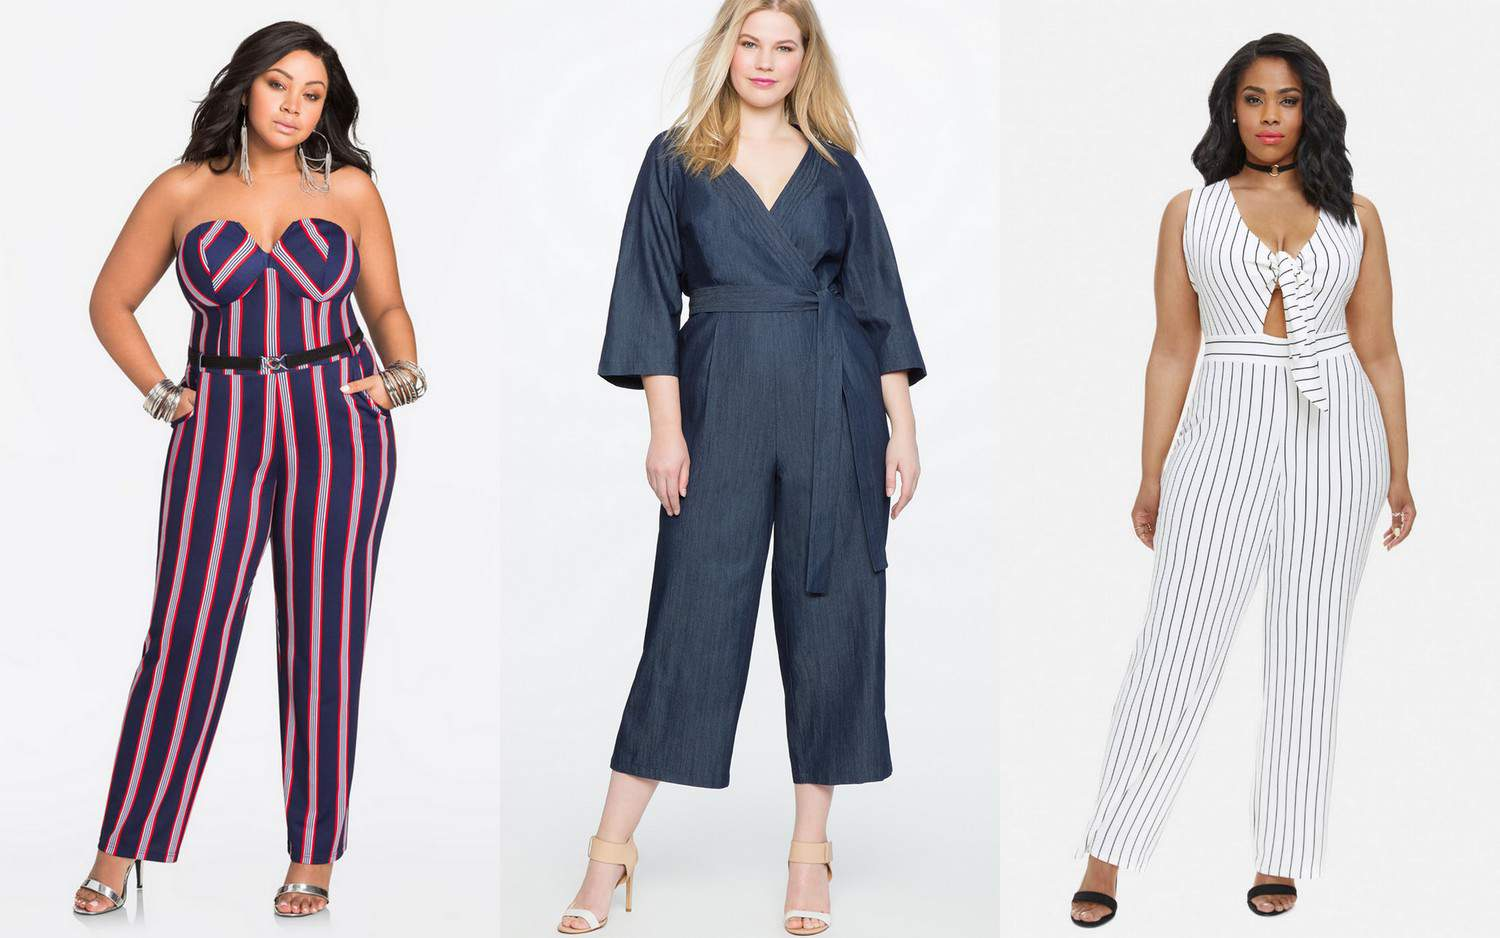 How do you feel about jumpsuits? Are you on the hunt for the perfect plus size jumpsuit for the spring into summer? Well, we found 14 awesome plus sized picks!